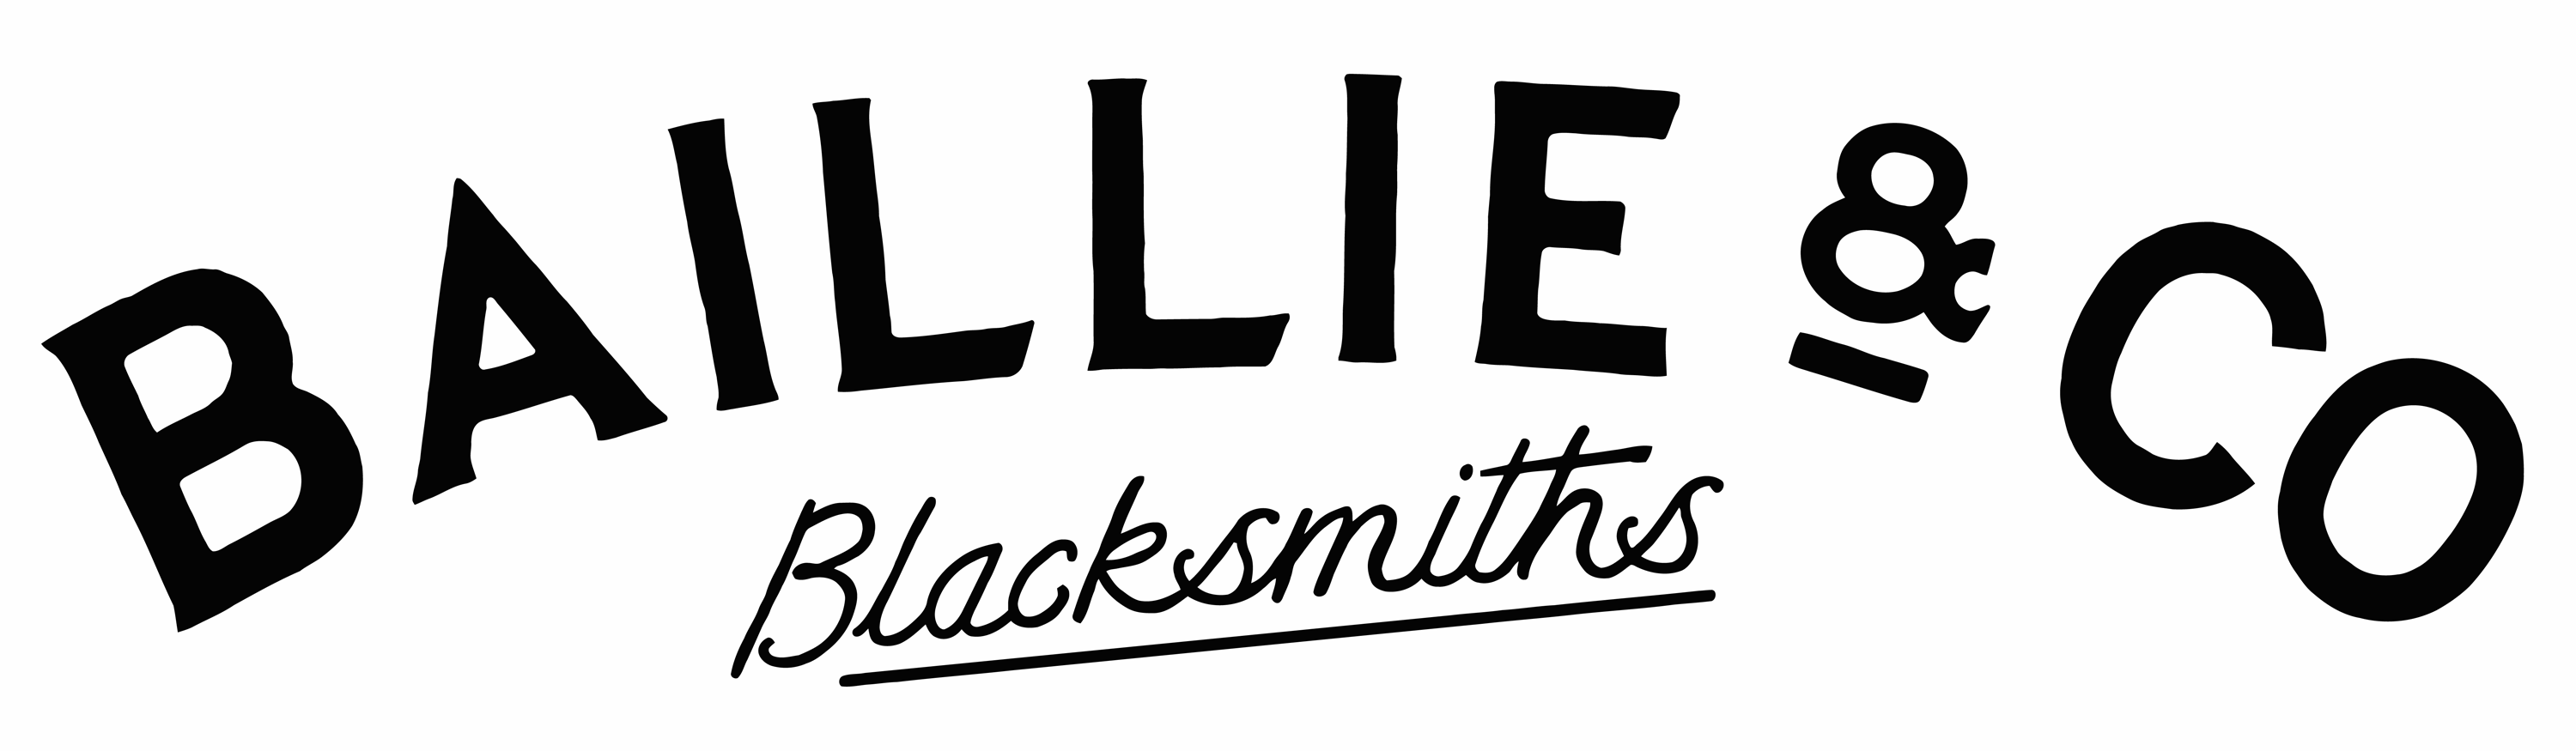 fabrication Archives - Baillie & Co Blacksmiths